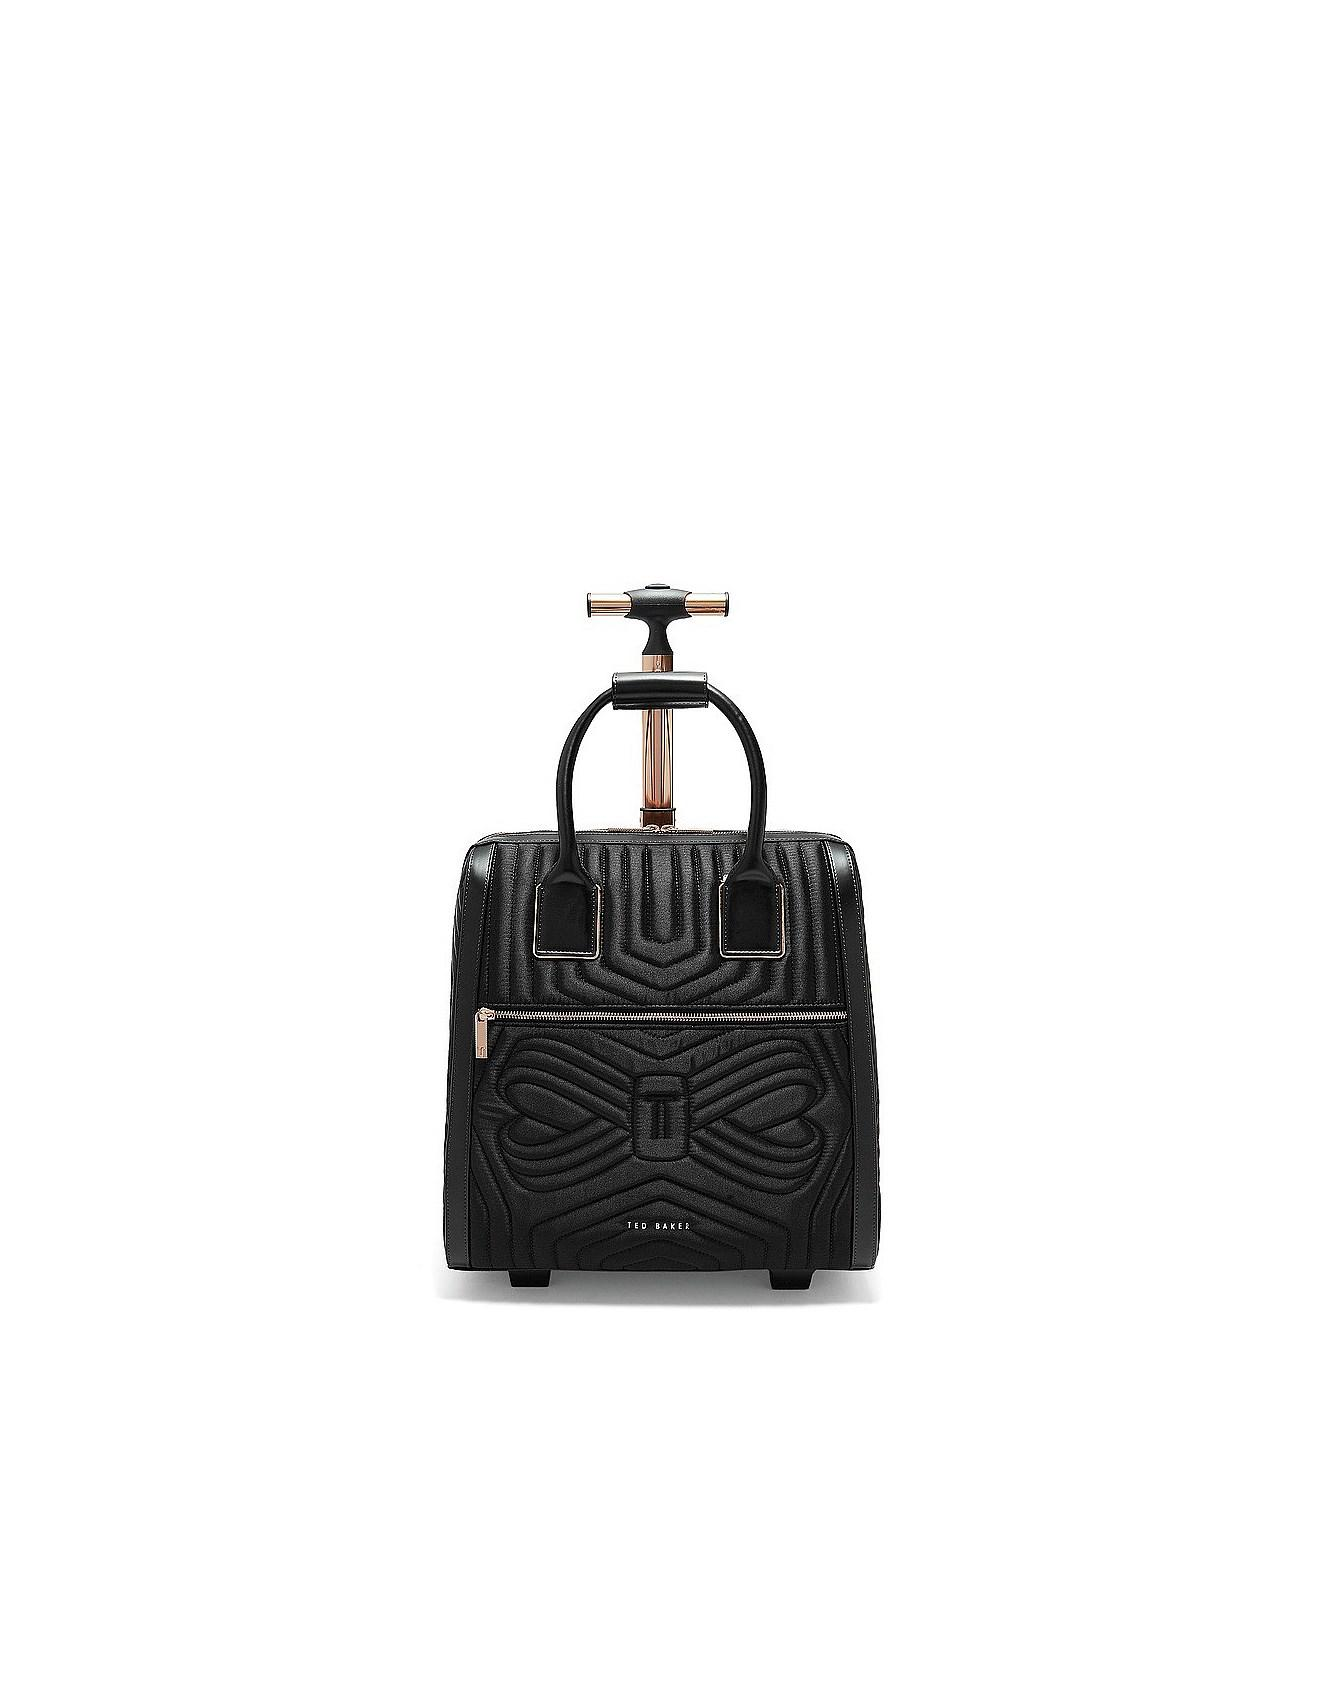 9587acdce683 Ted Baker Anisee Travel Bag in Black - Lyst